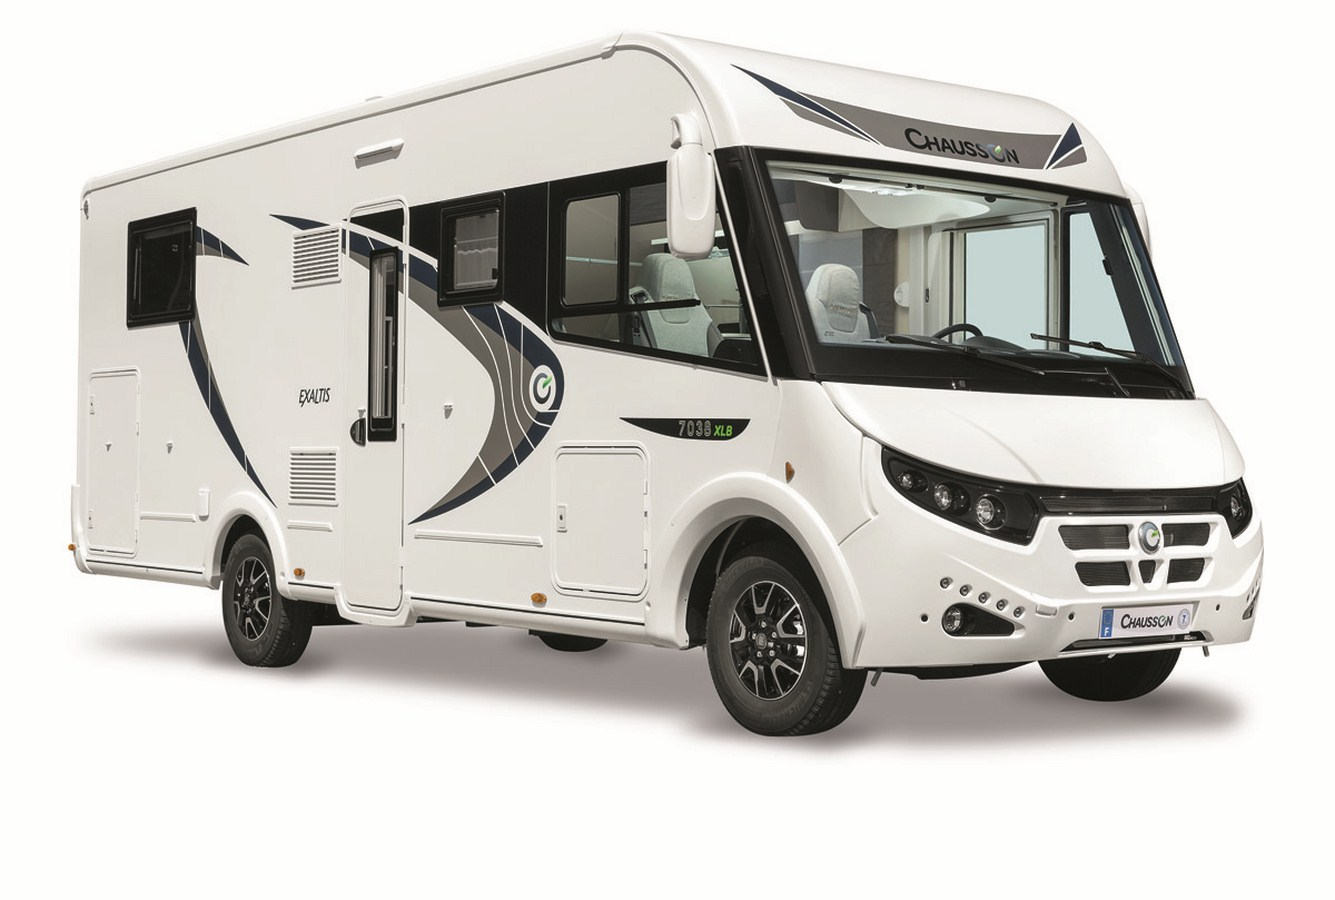 Camping car chausson integral exaltis occasion